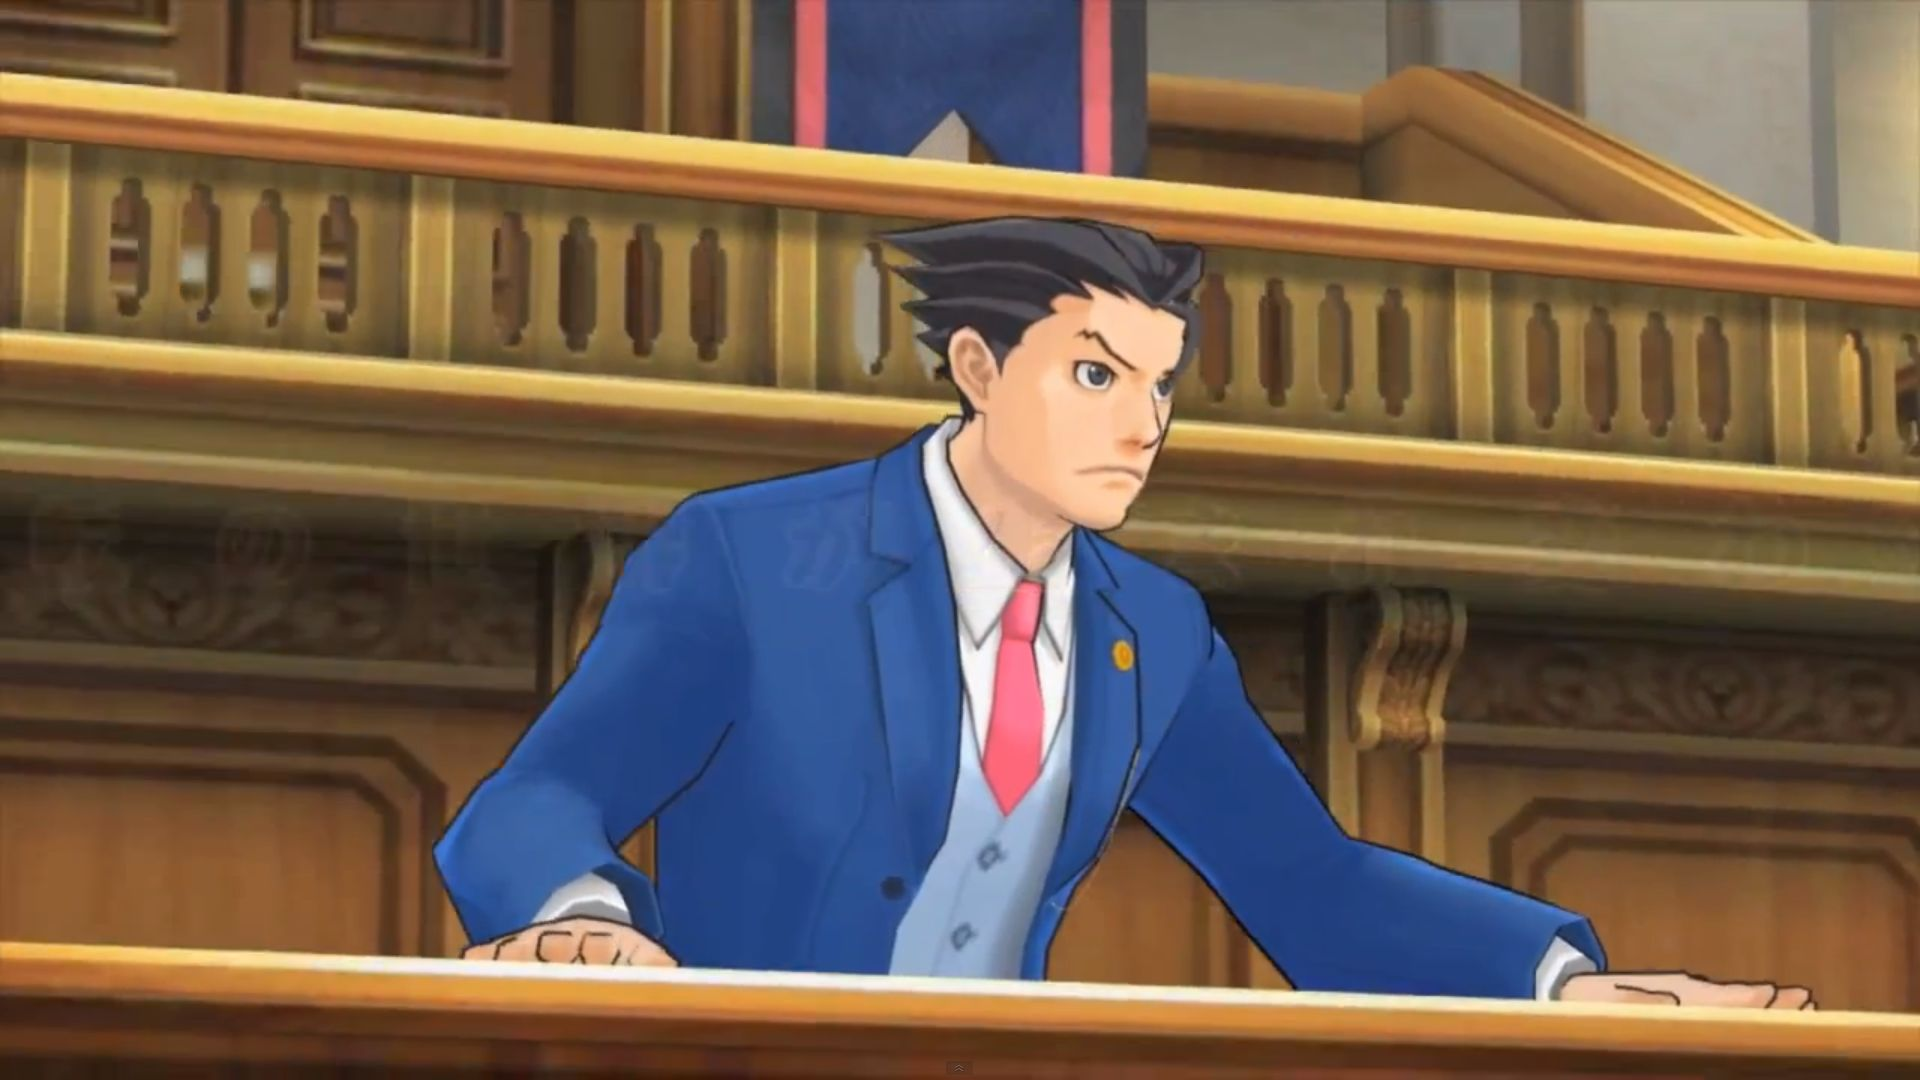 Phoenix Wright : Ace Attorney – Dual Destinies